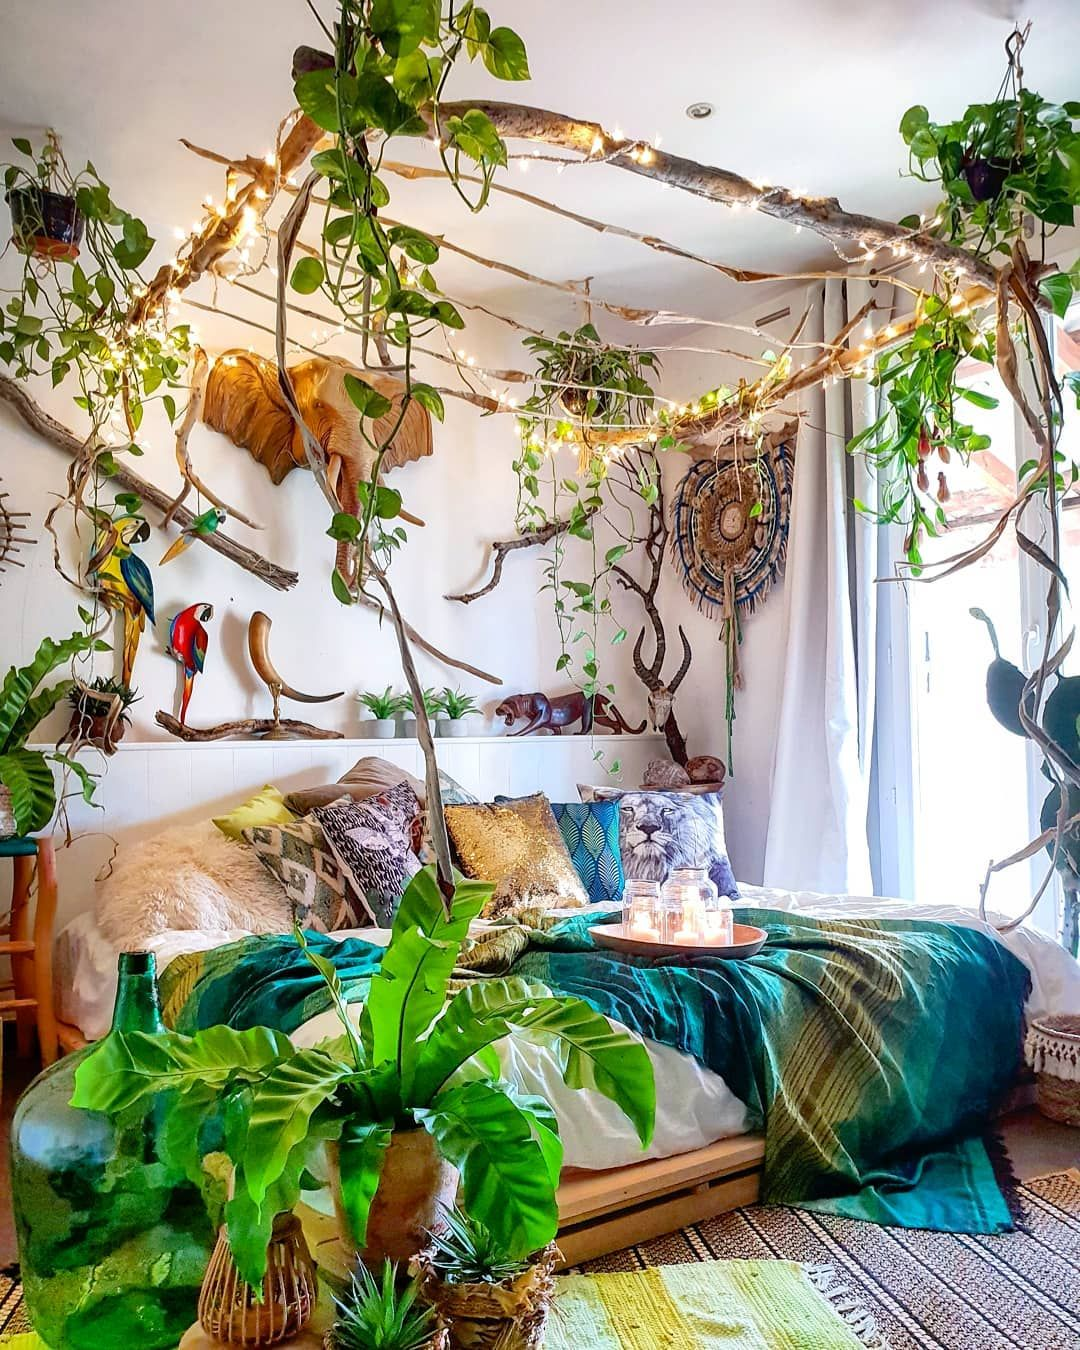 57 Bohemian Bedrooms That'll Make You Want to Rede